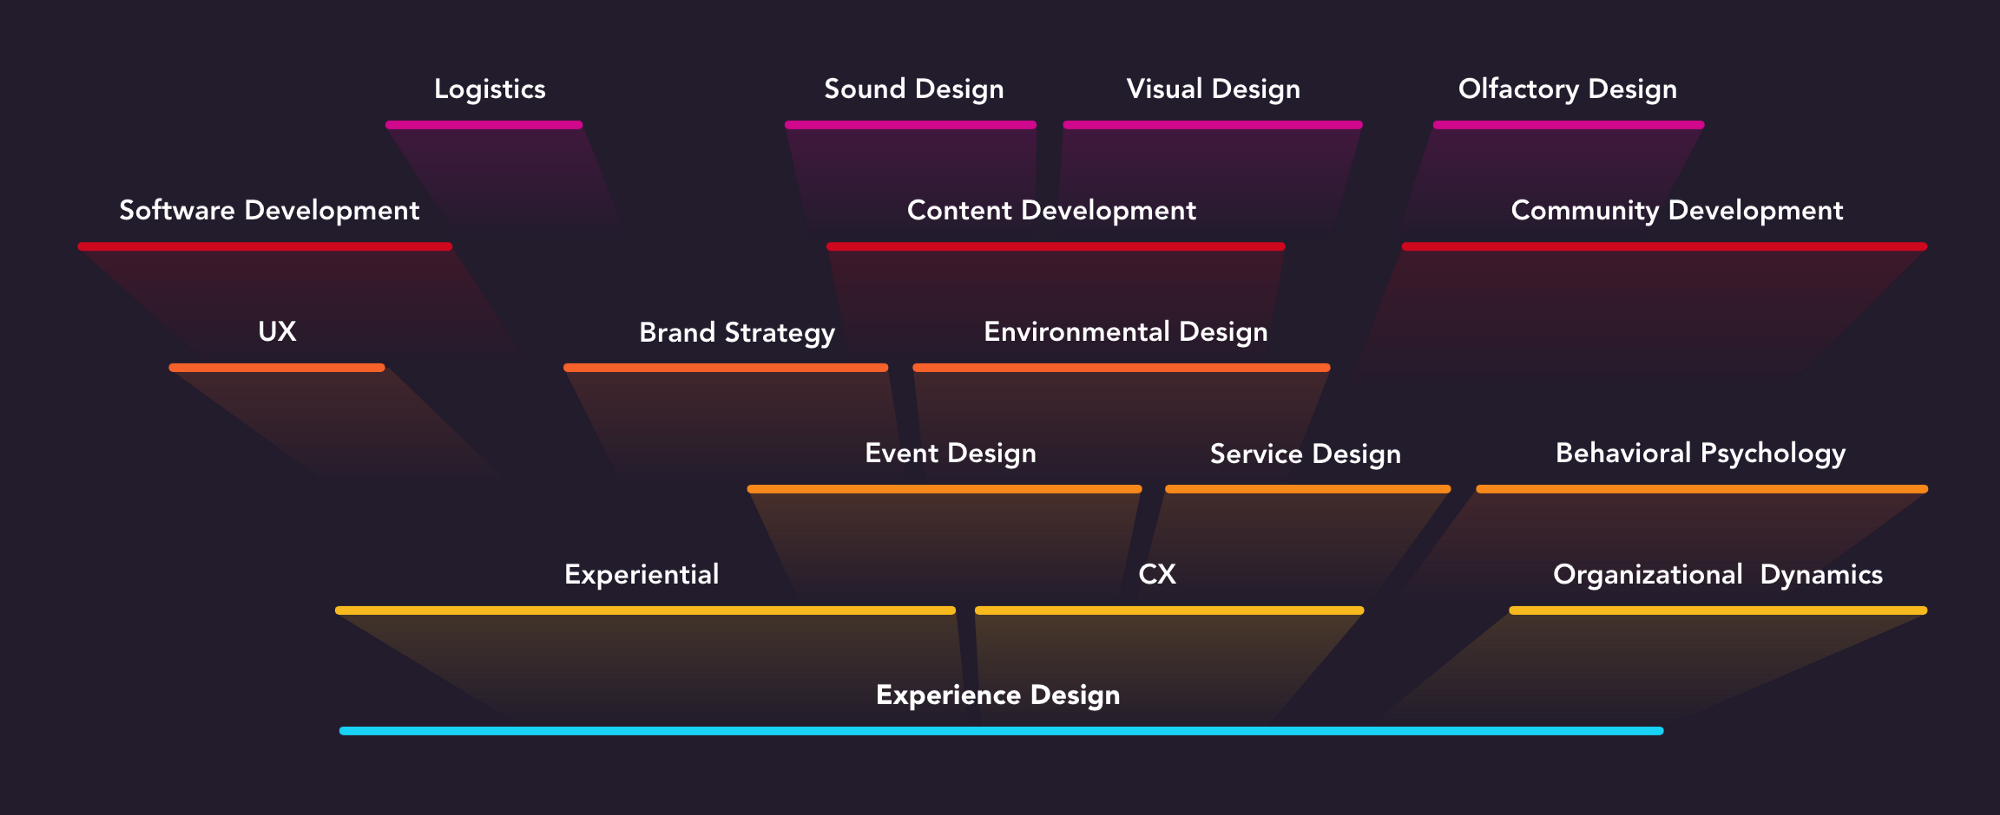 Master Diagram : Skills and competencies in a holistic Experience Design ecosystem.